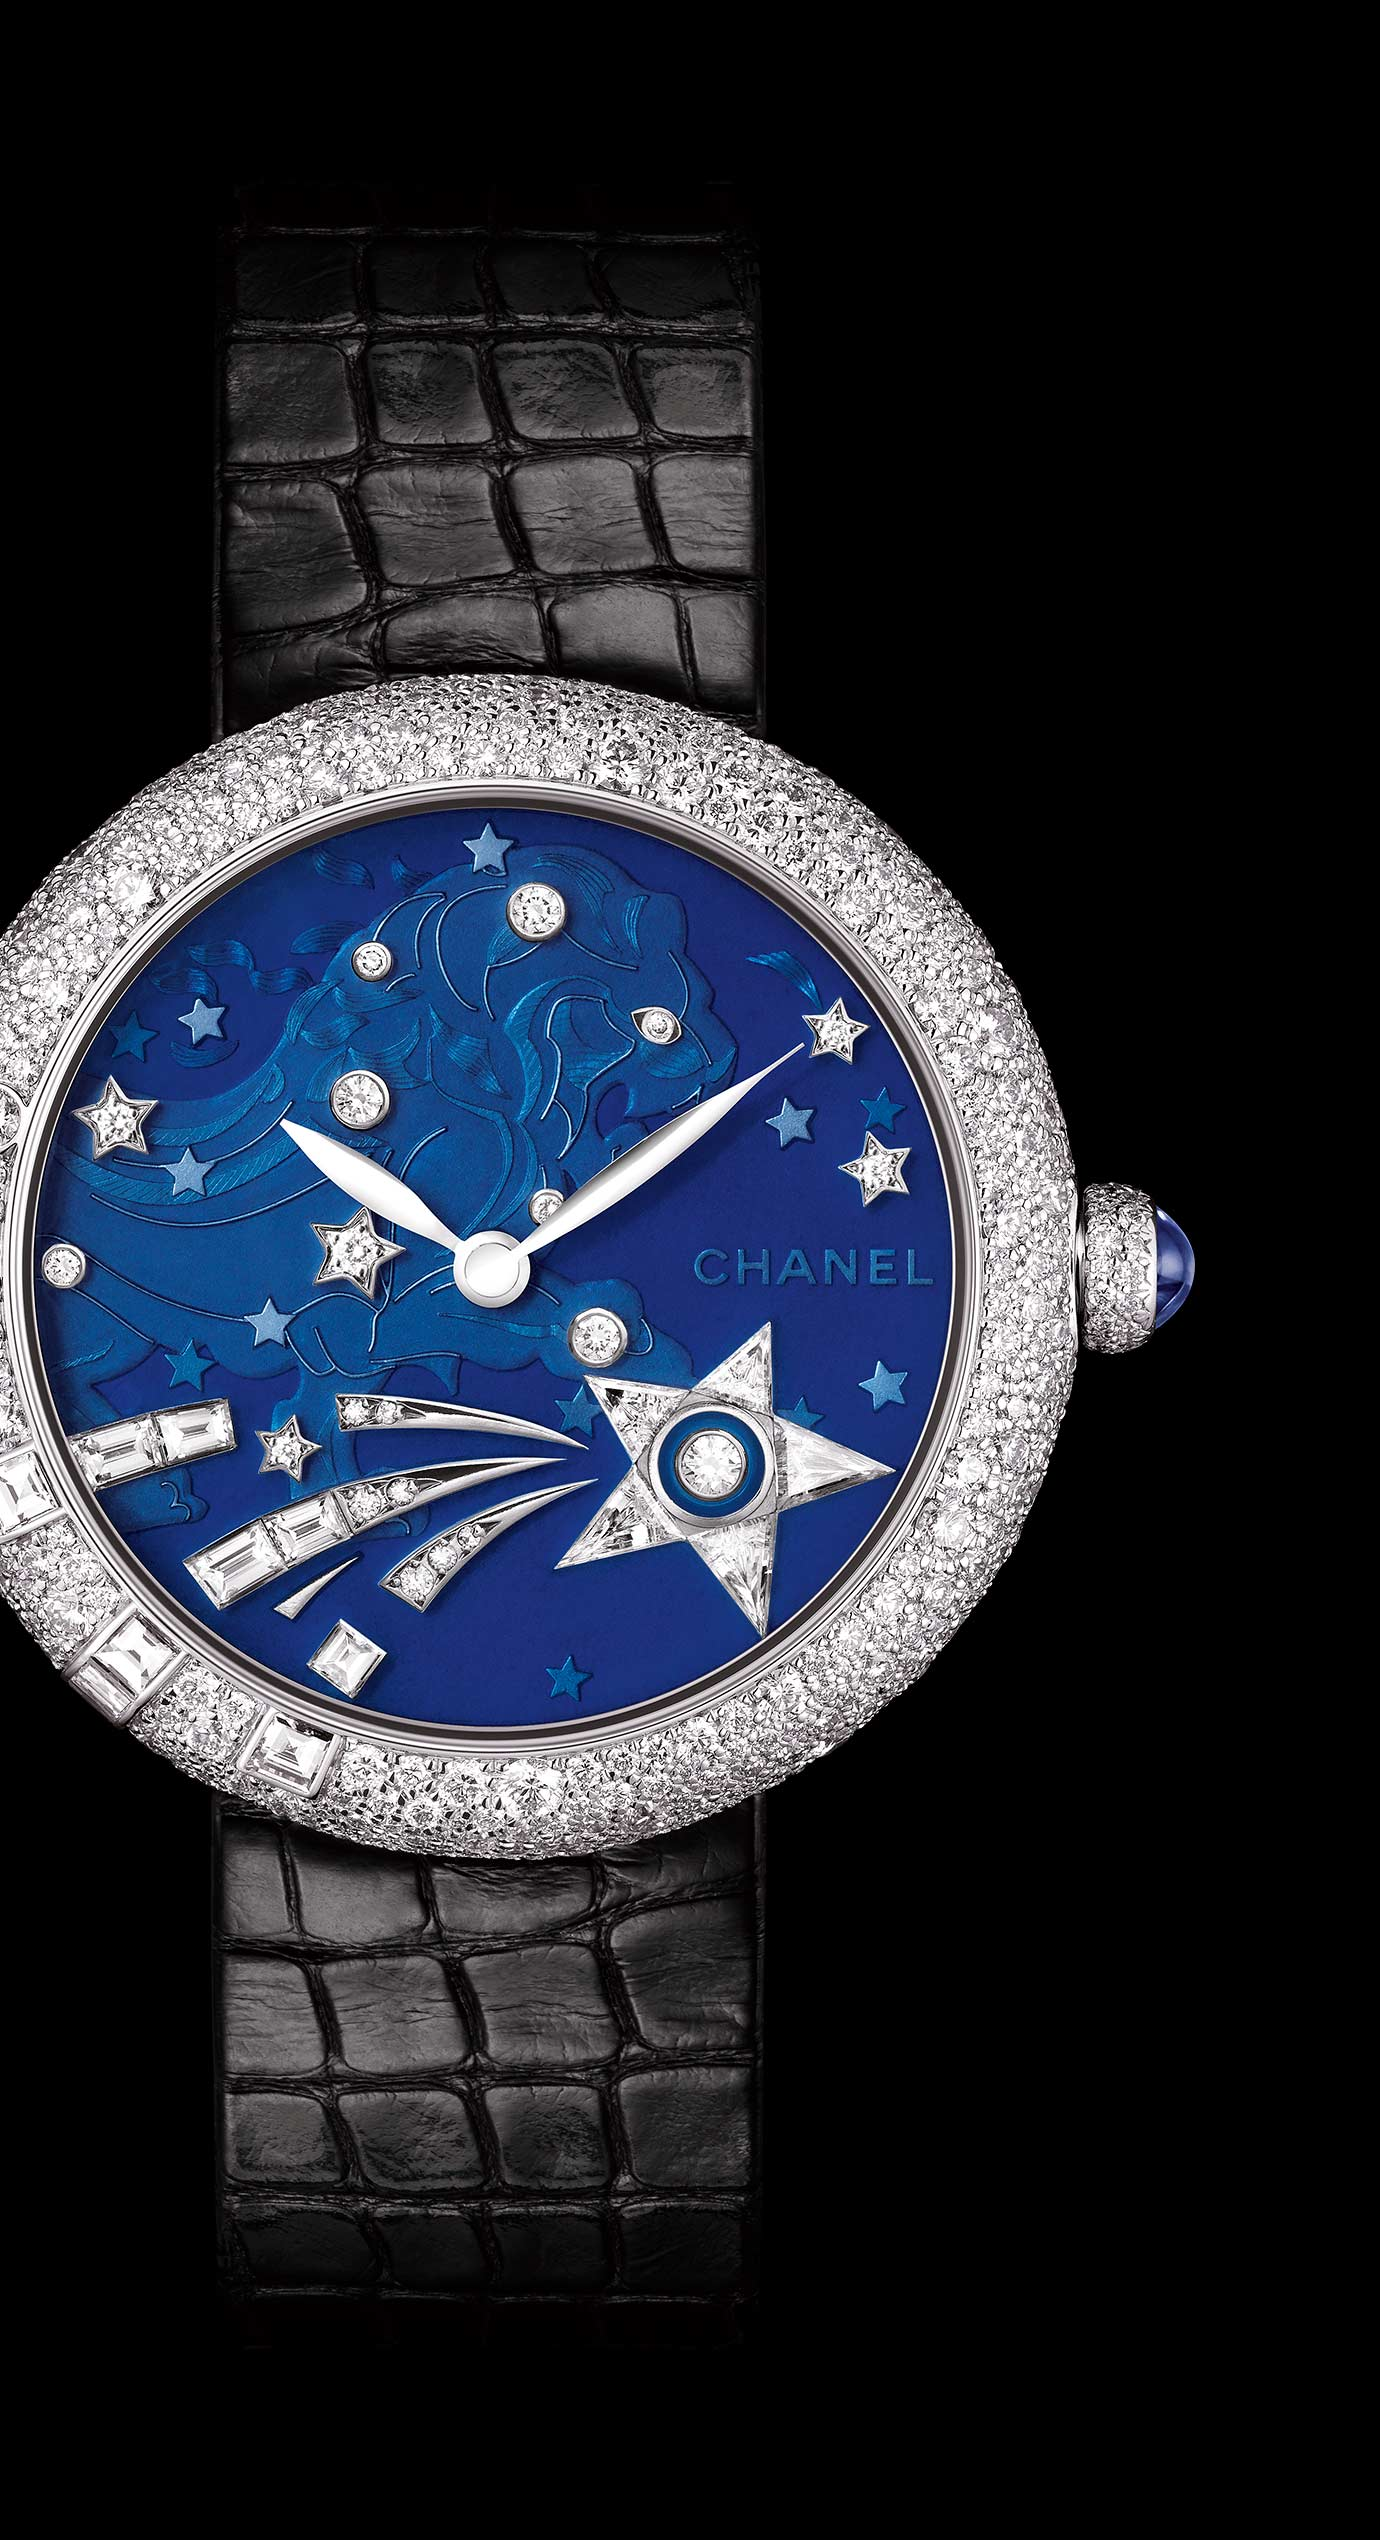 Mademoiselle Privé La Constellation du Lion Fine Jewellery watch - Grand Feu blue translucent enamel and diamonds - Enlarged view